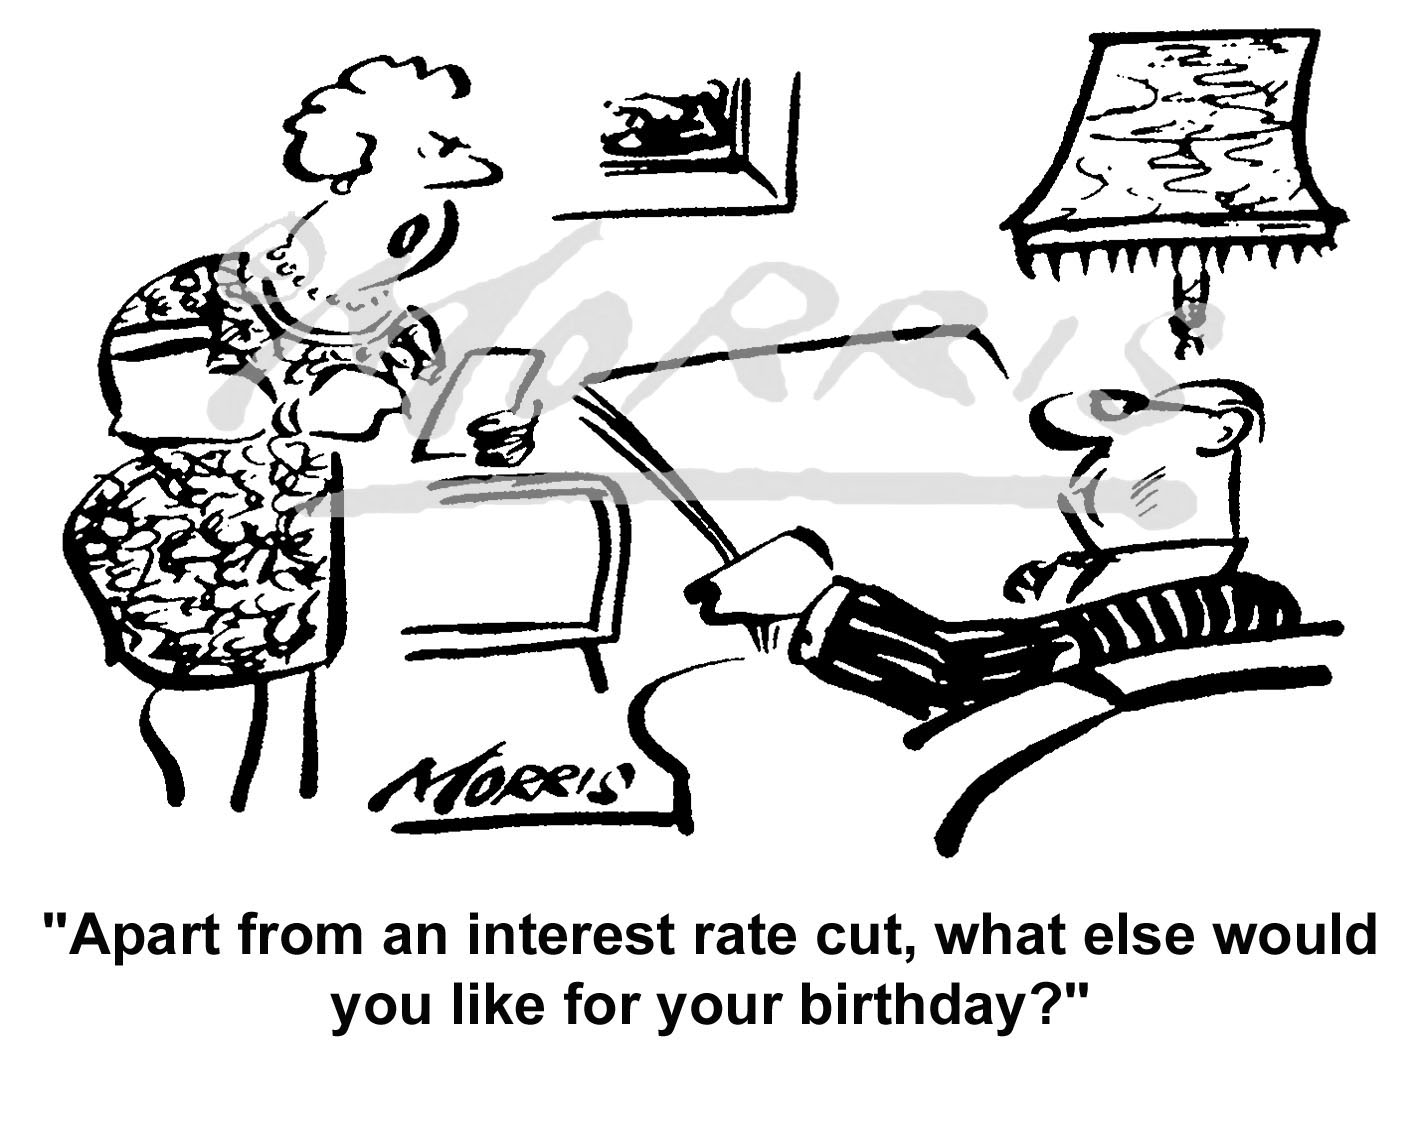 Interest Rate cut business cartoon: Ref – 4693bw